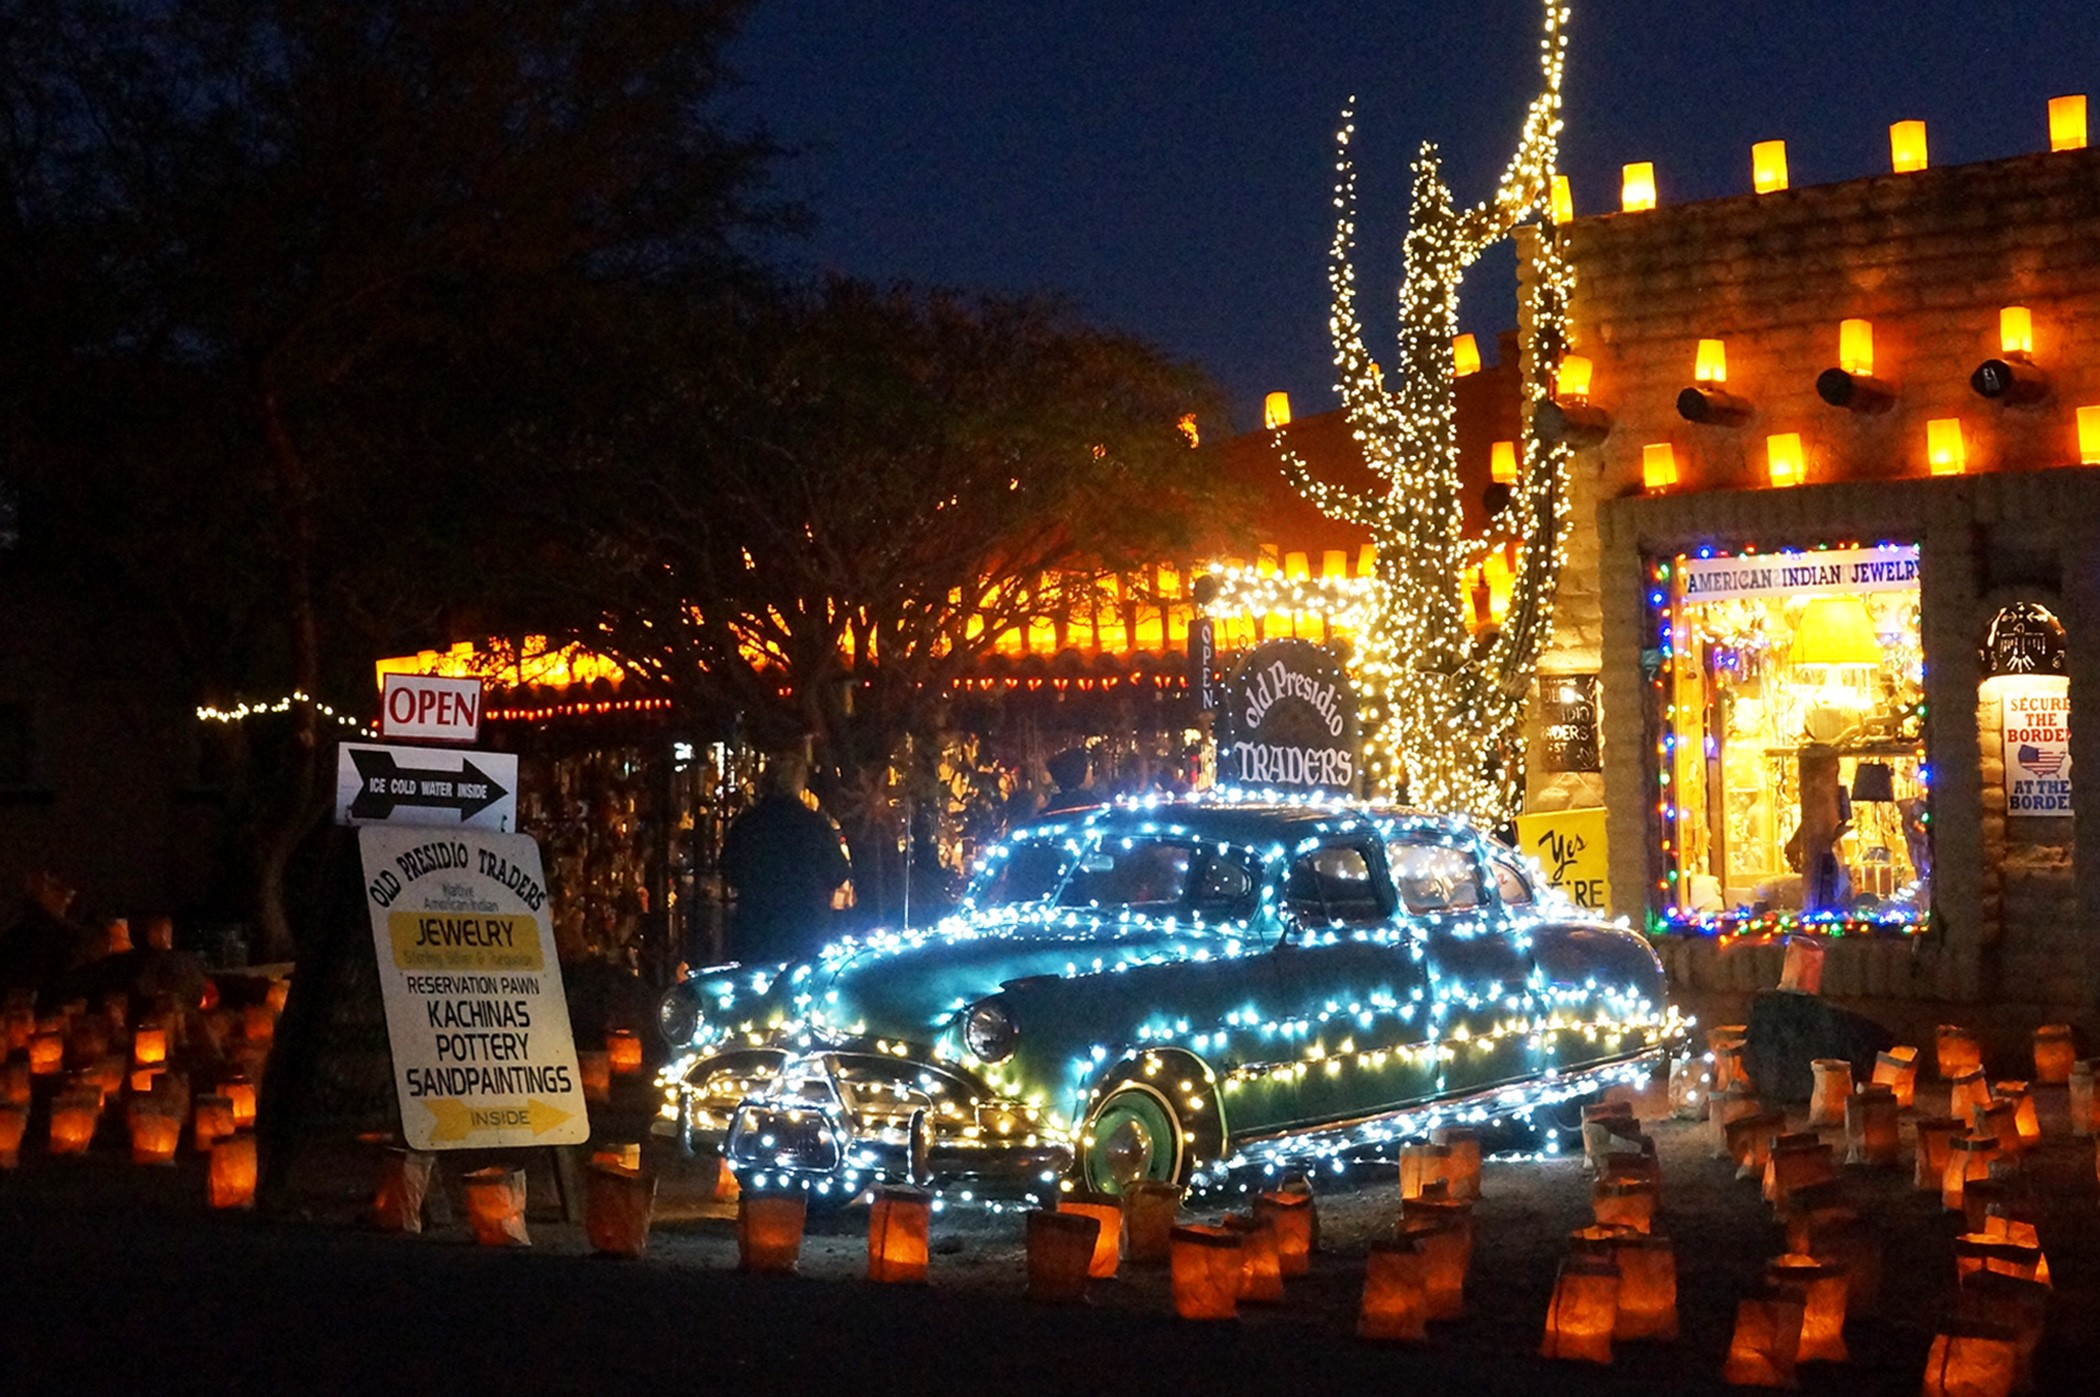 Dec. 2nd & 3rd, 2016 Luminaria Nights in Tubac